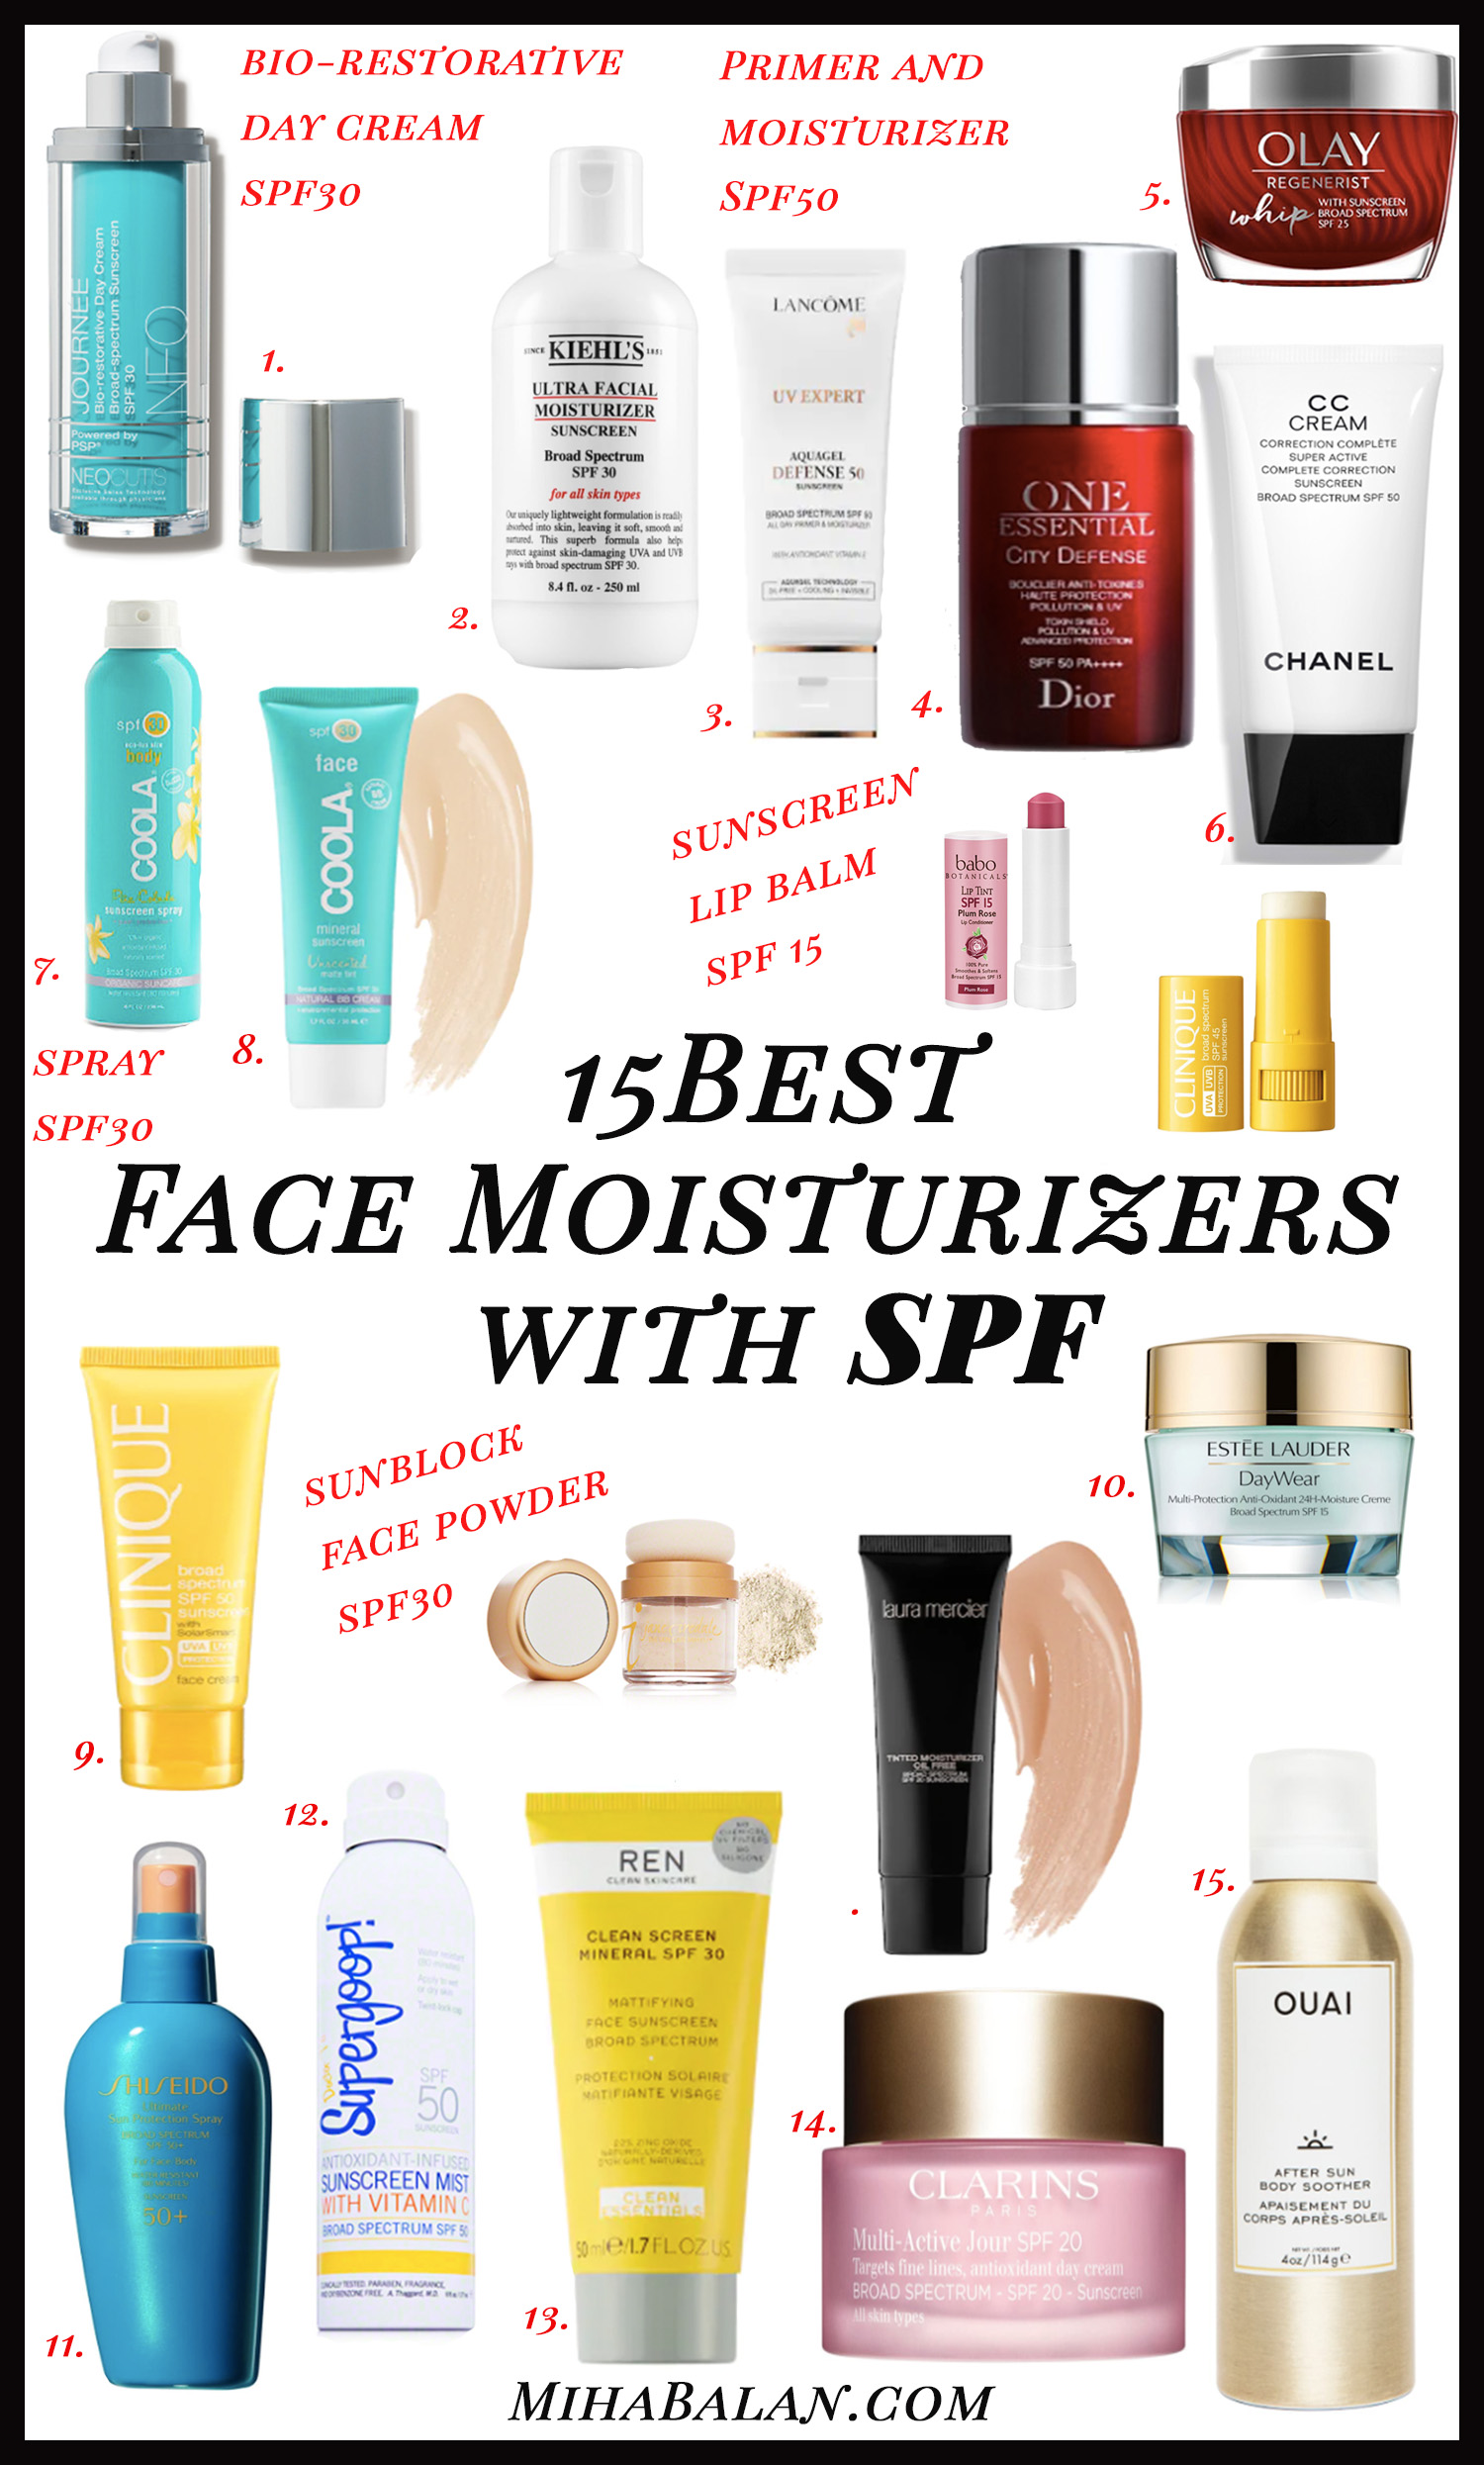 15 best SPF face moisturizers for women in their 30s, face care, face cream, skincare, wellness, sun protection2